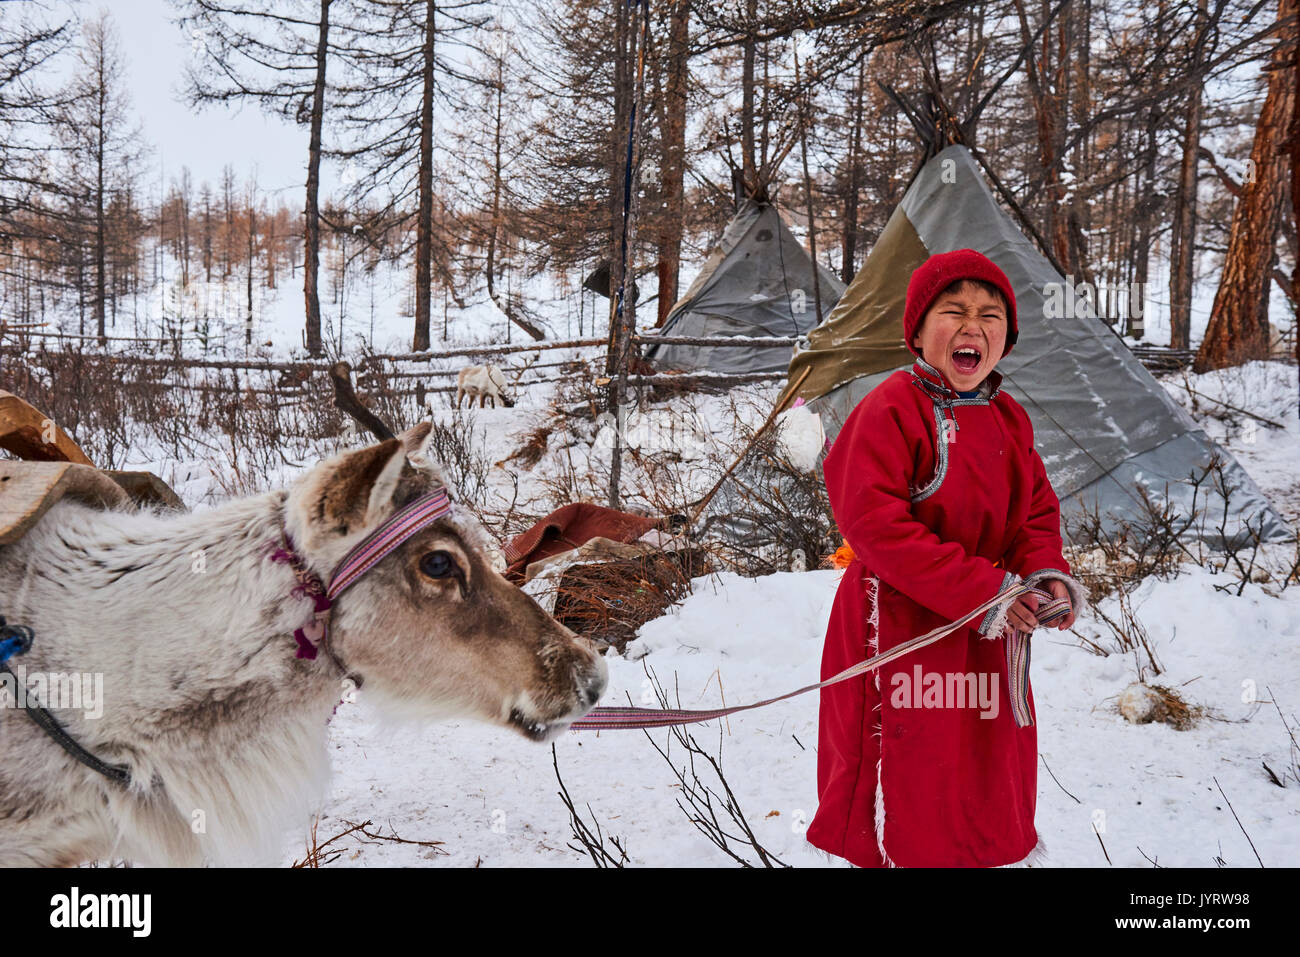 Mongolia, Khovsgol province, the Tsaatan, reindeer herder, the winter camp, young boy crying to call his reindeers - Stock Image